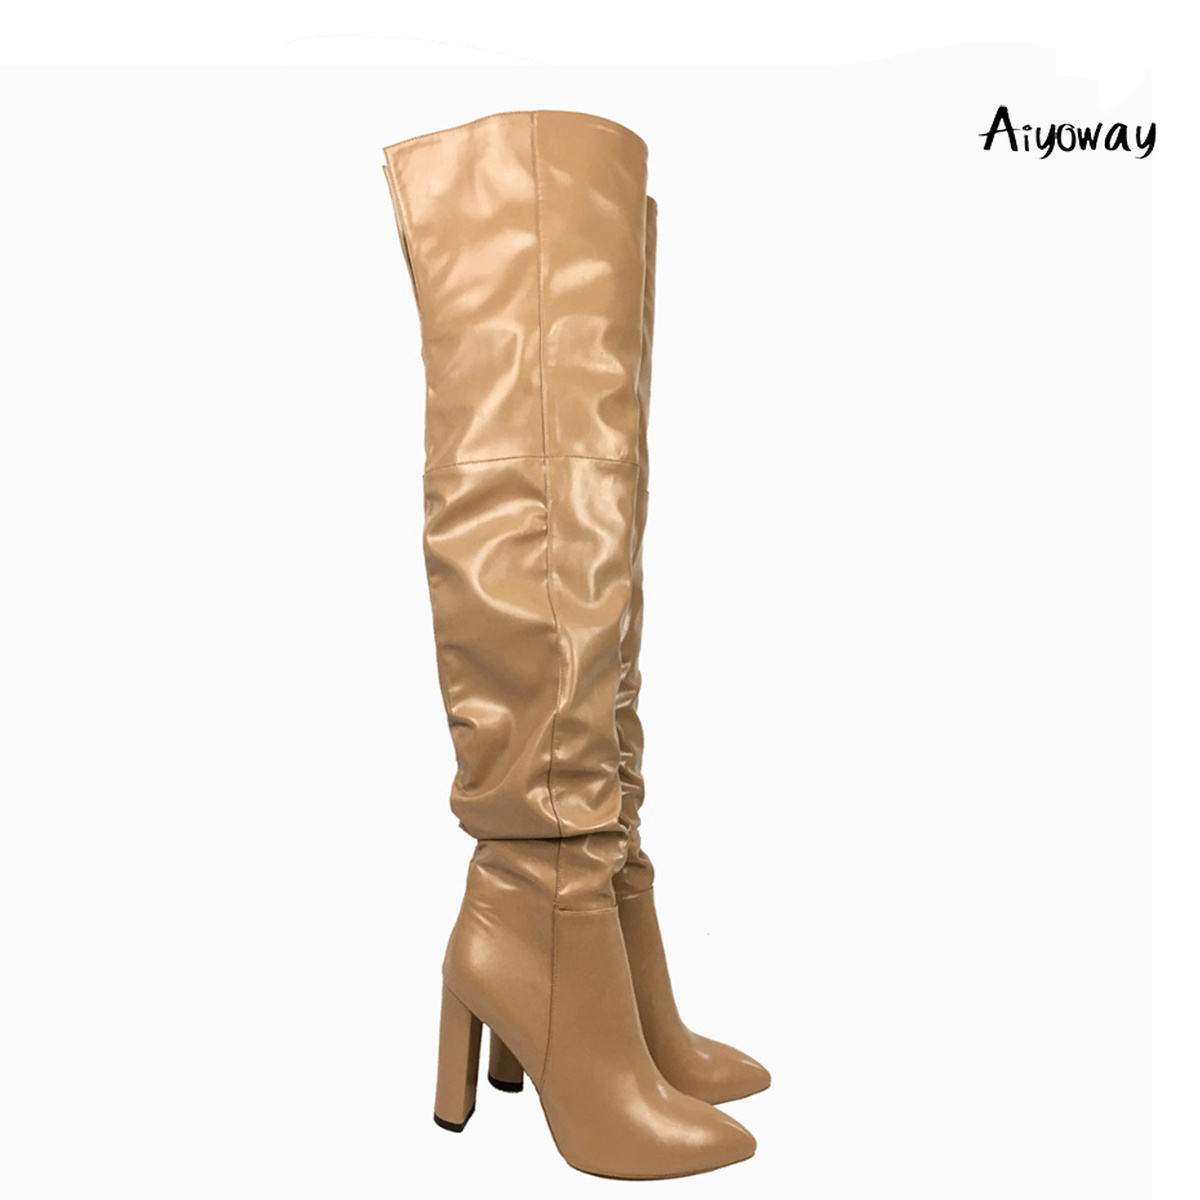 Aiyoway Fashion Women Ladies Pointed Toe High Heel Over The Knee Boots Block Heel Slouchy Winter Dress Shoes Beige US Size 5~15Aiyoway Fashion Women Ladies Pointed Toe High Heel Over The Knee Boots Block Heel Slouchy Winter Dress Shoes Beige US Size 5~15